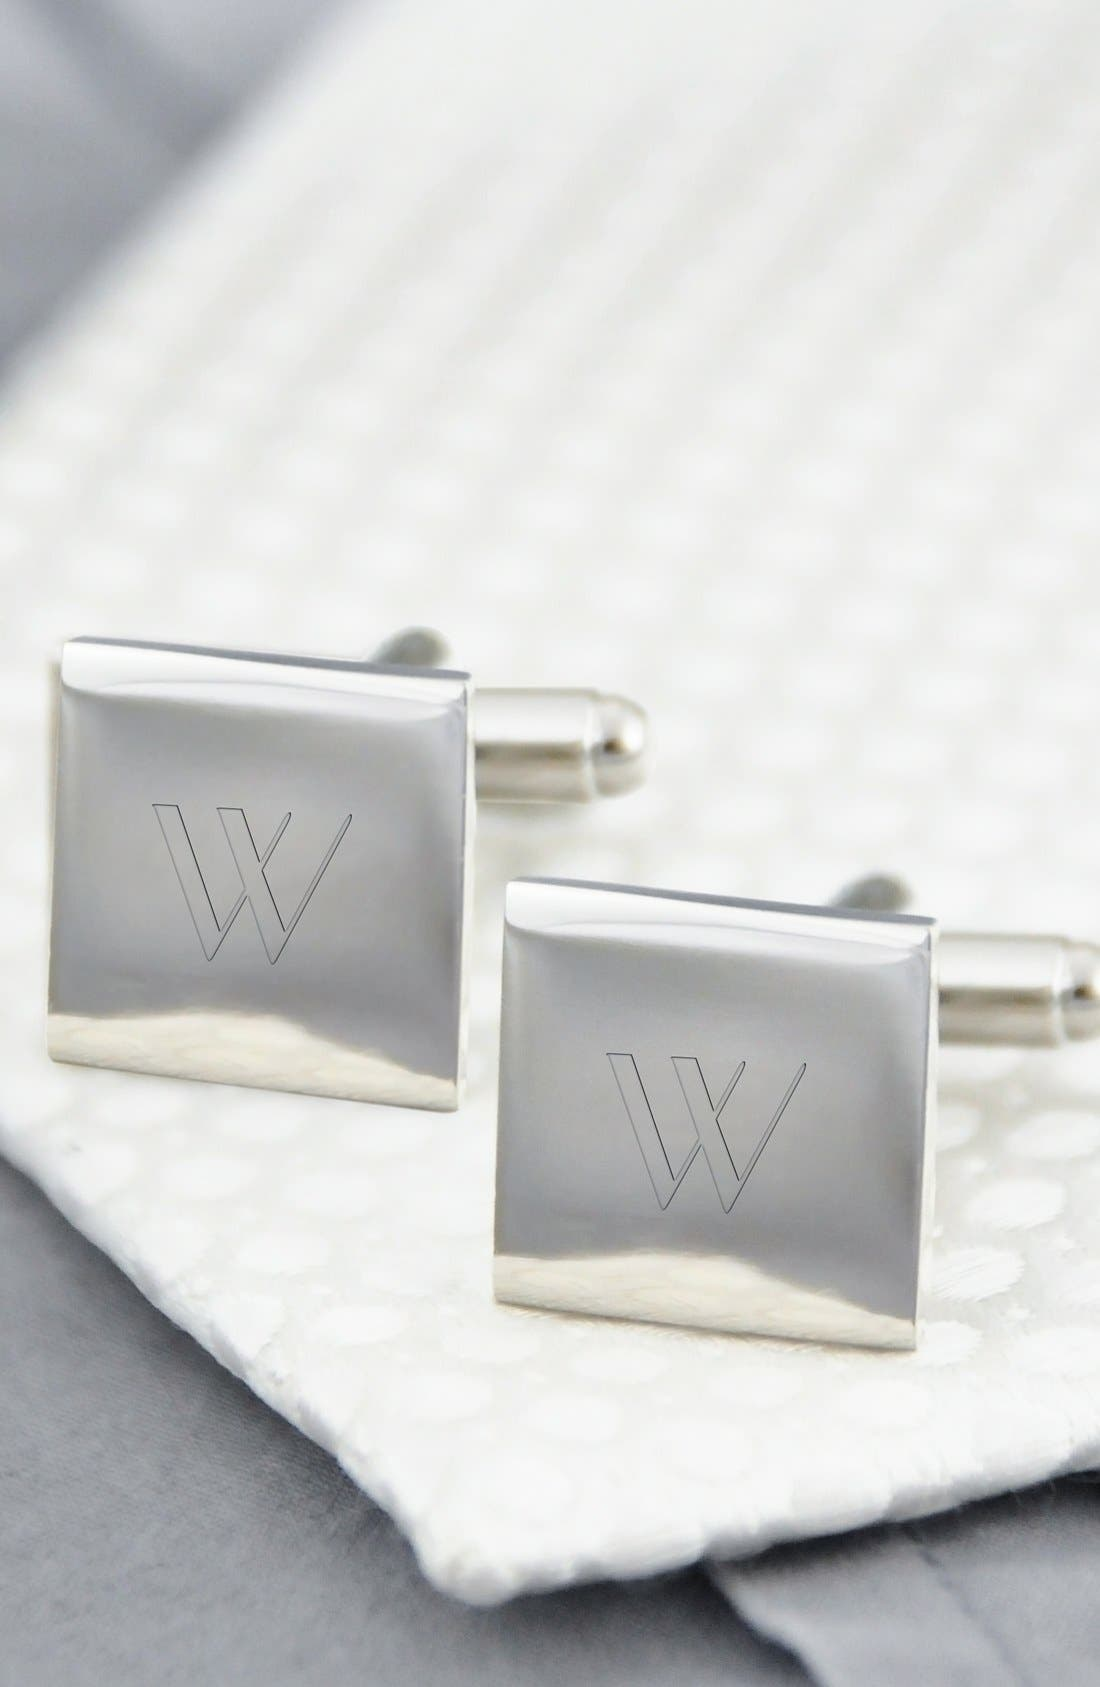 Main Image - Cathy's Concepts Monogram Square Cuff Links